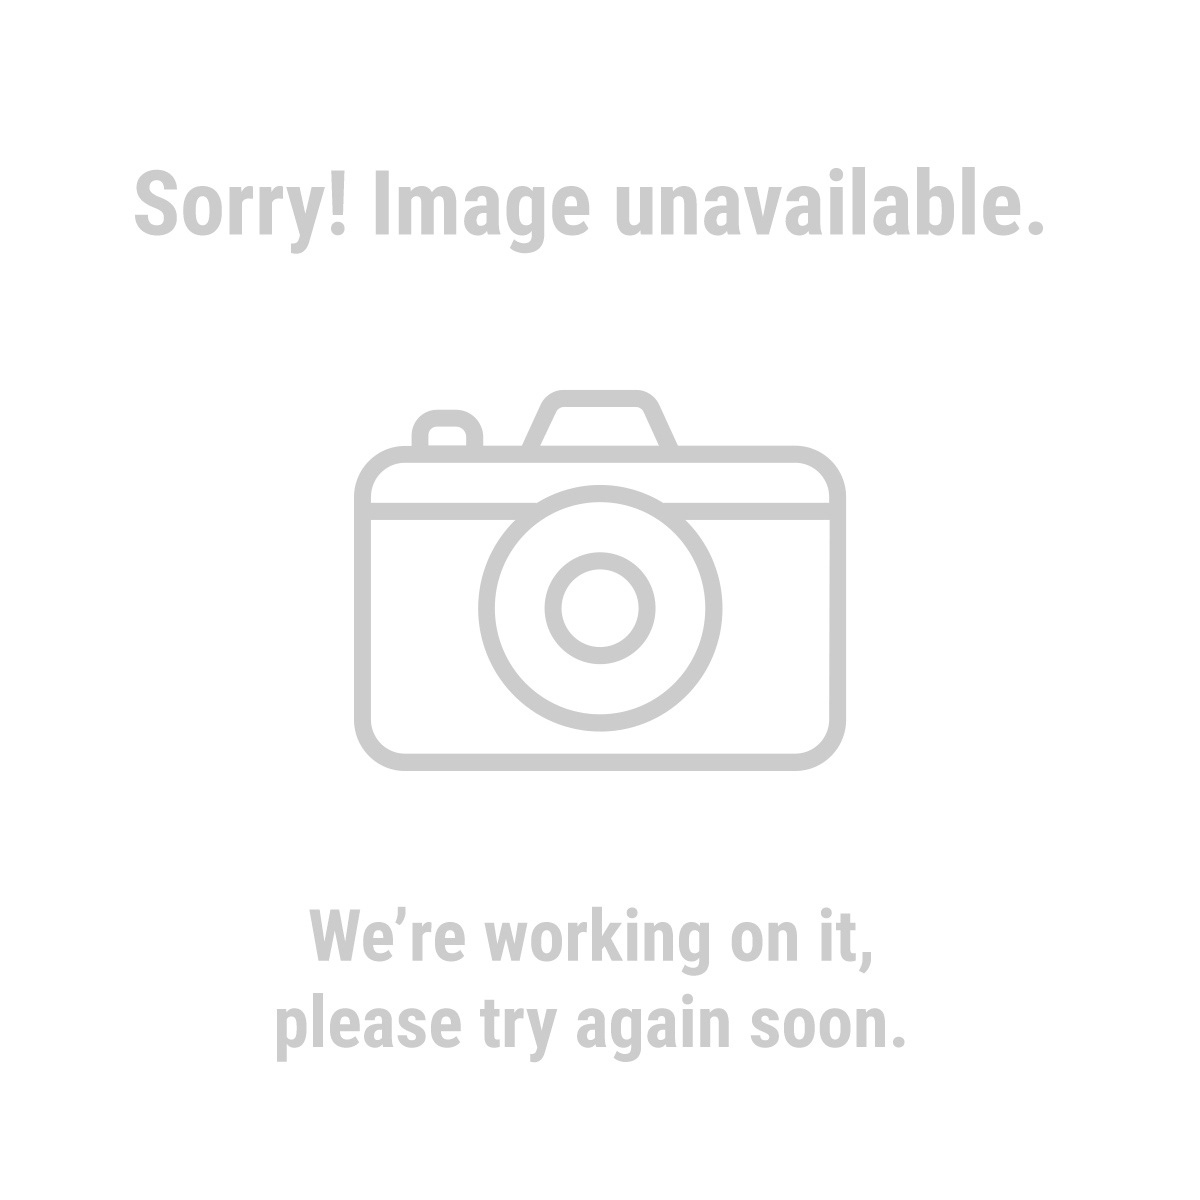 Haul-Master® 69591 1000 Lb. Steel Loading Ramps, Set of Two